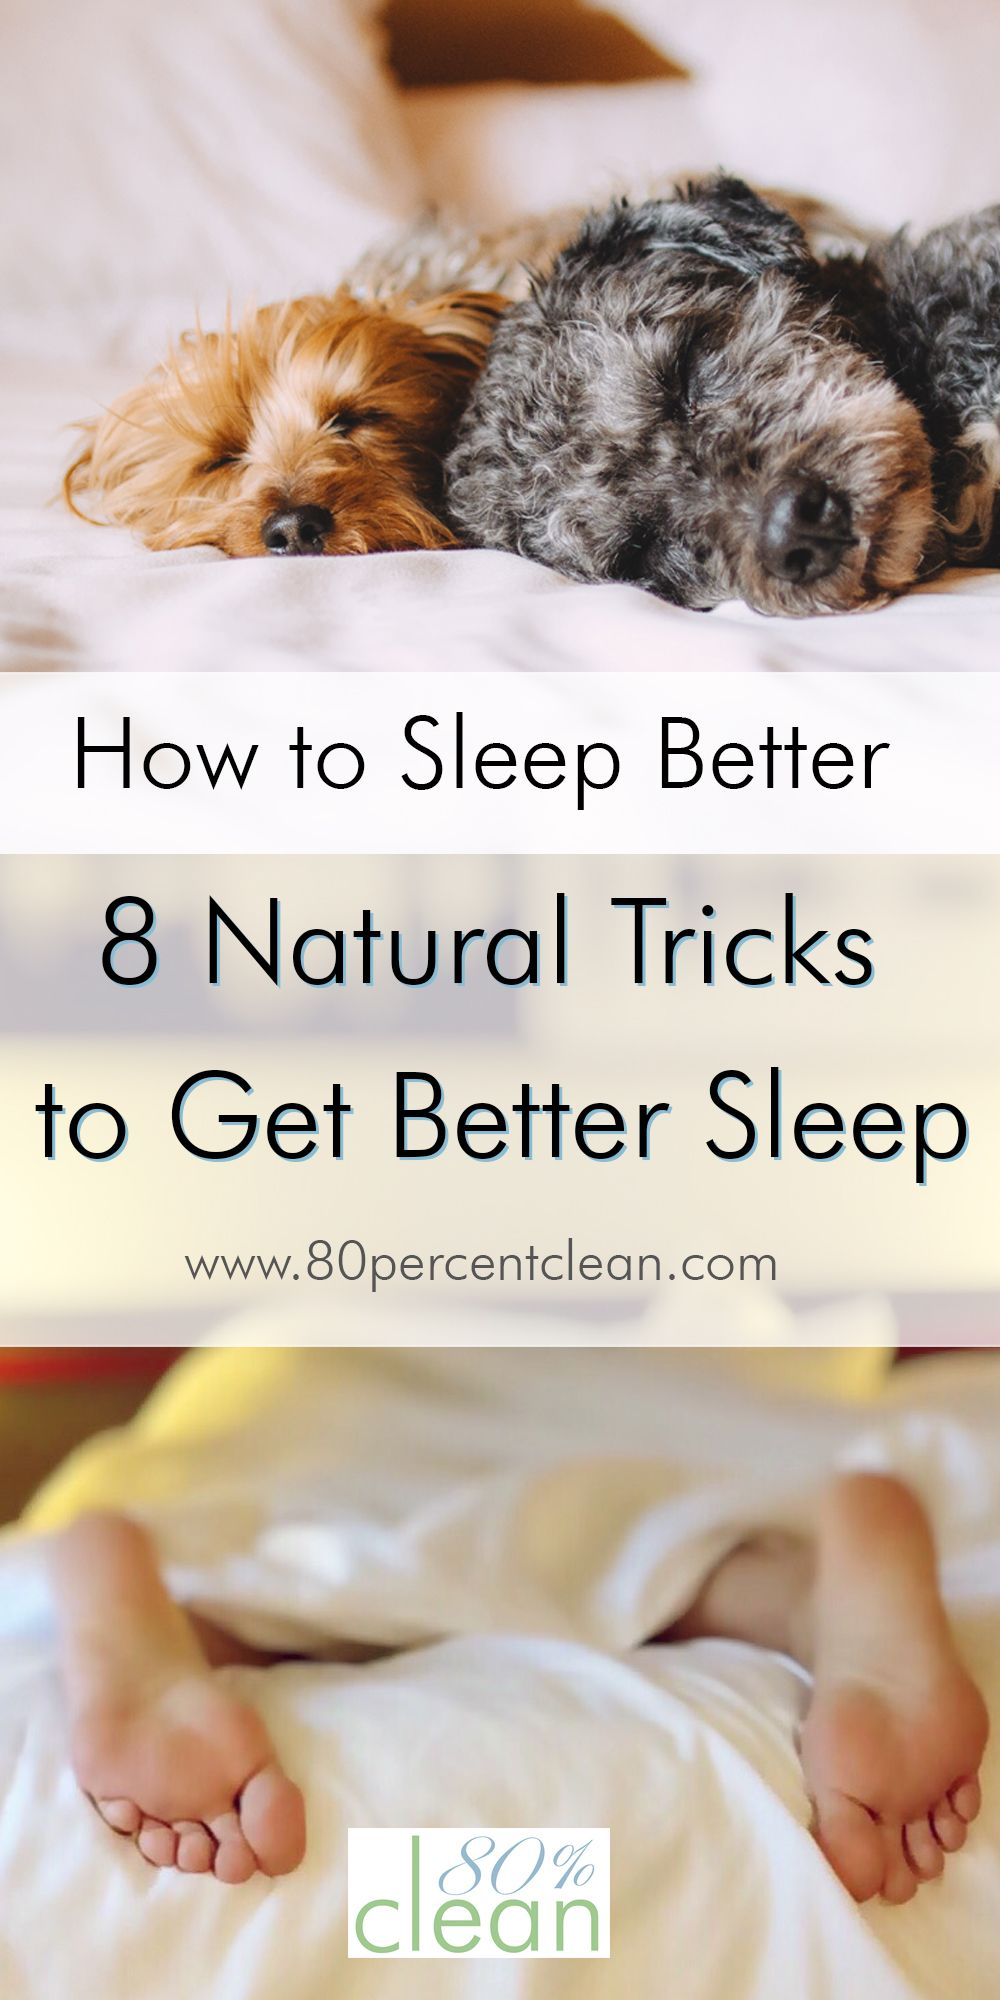 Can't fall or stay asleep? Want to know how to sleep better? Try these 8 natural tricks to get better sleep. No pills or chemicals included.